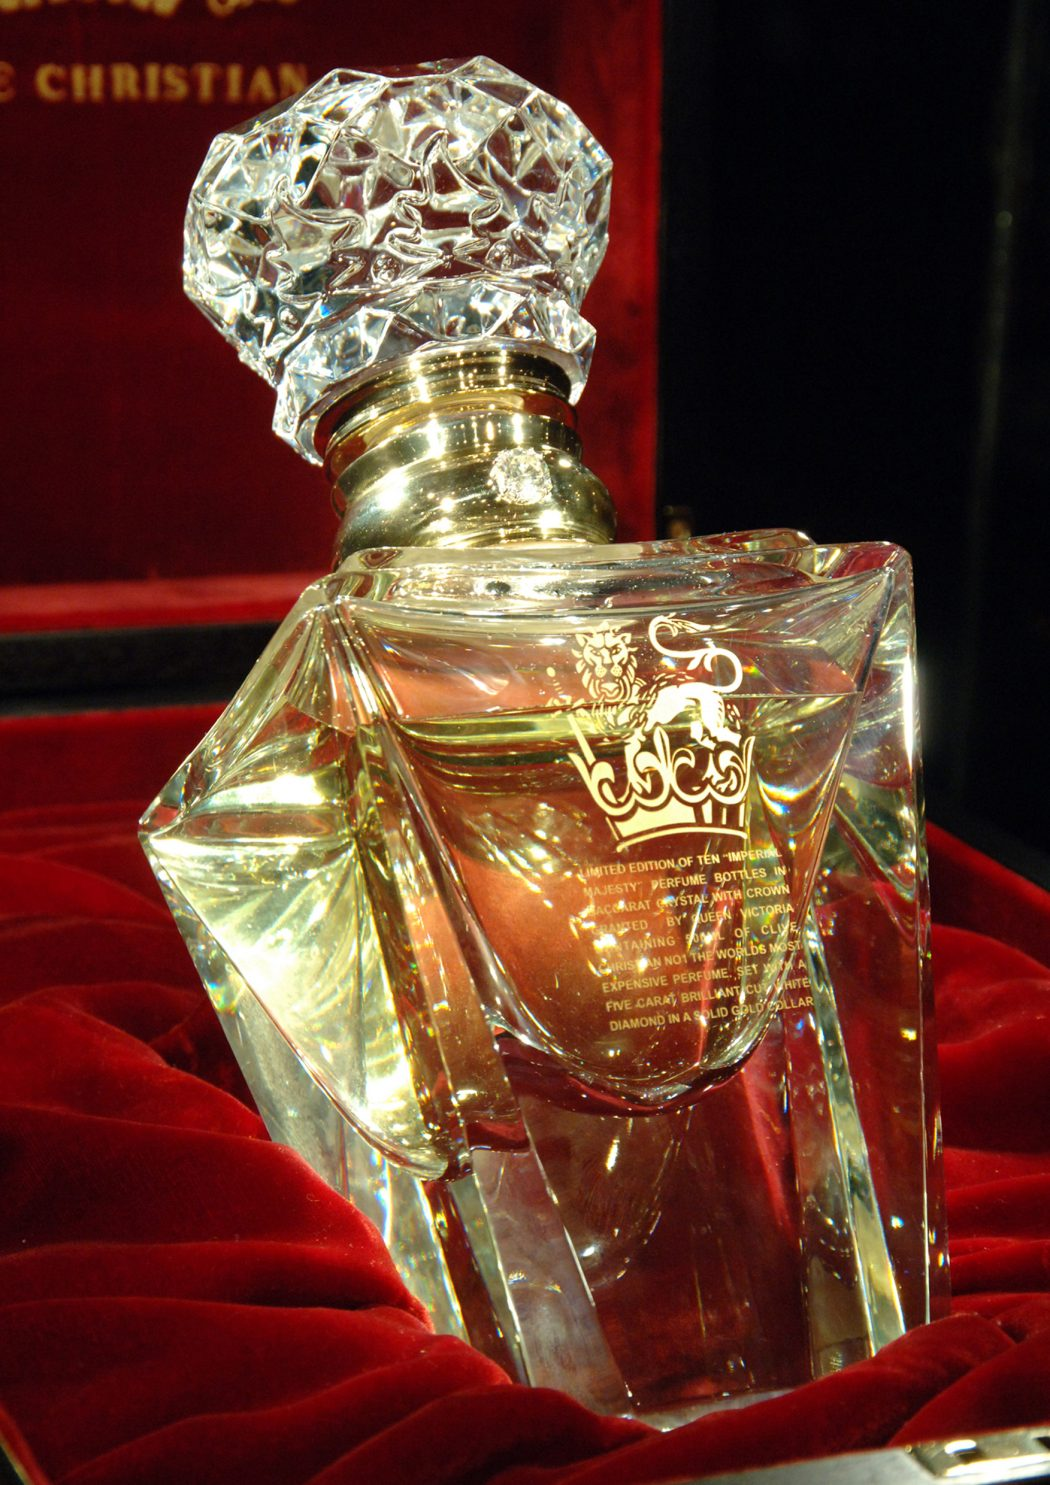 clive-christian-no-1-perfume-imperial-majesty-edition-closeup11 Top 10 Most Expensive Things on Earth